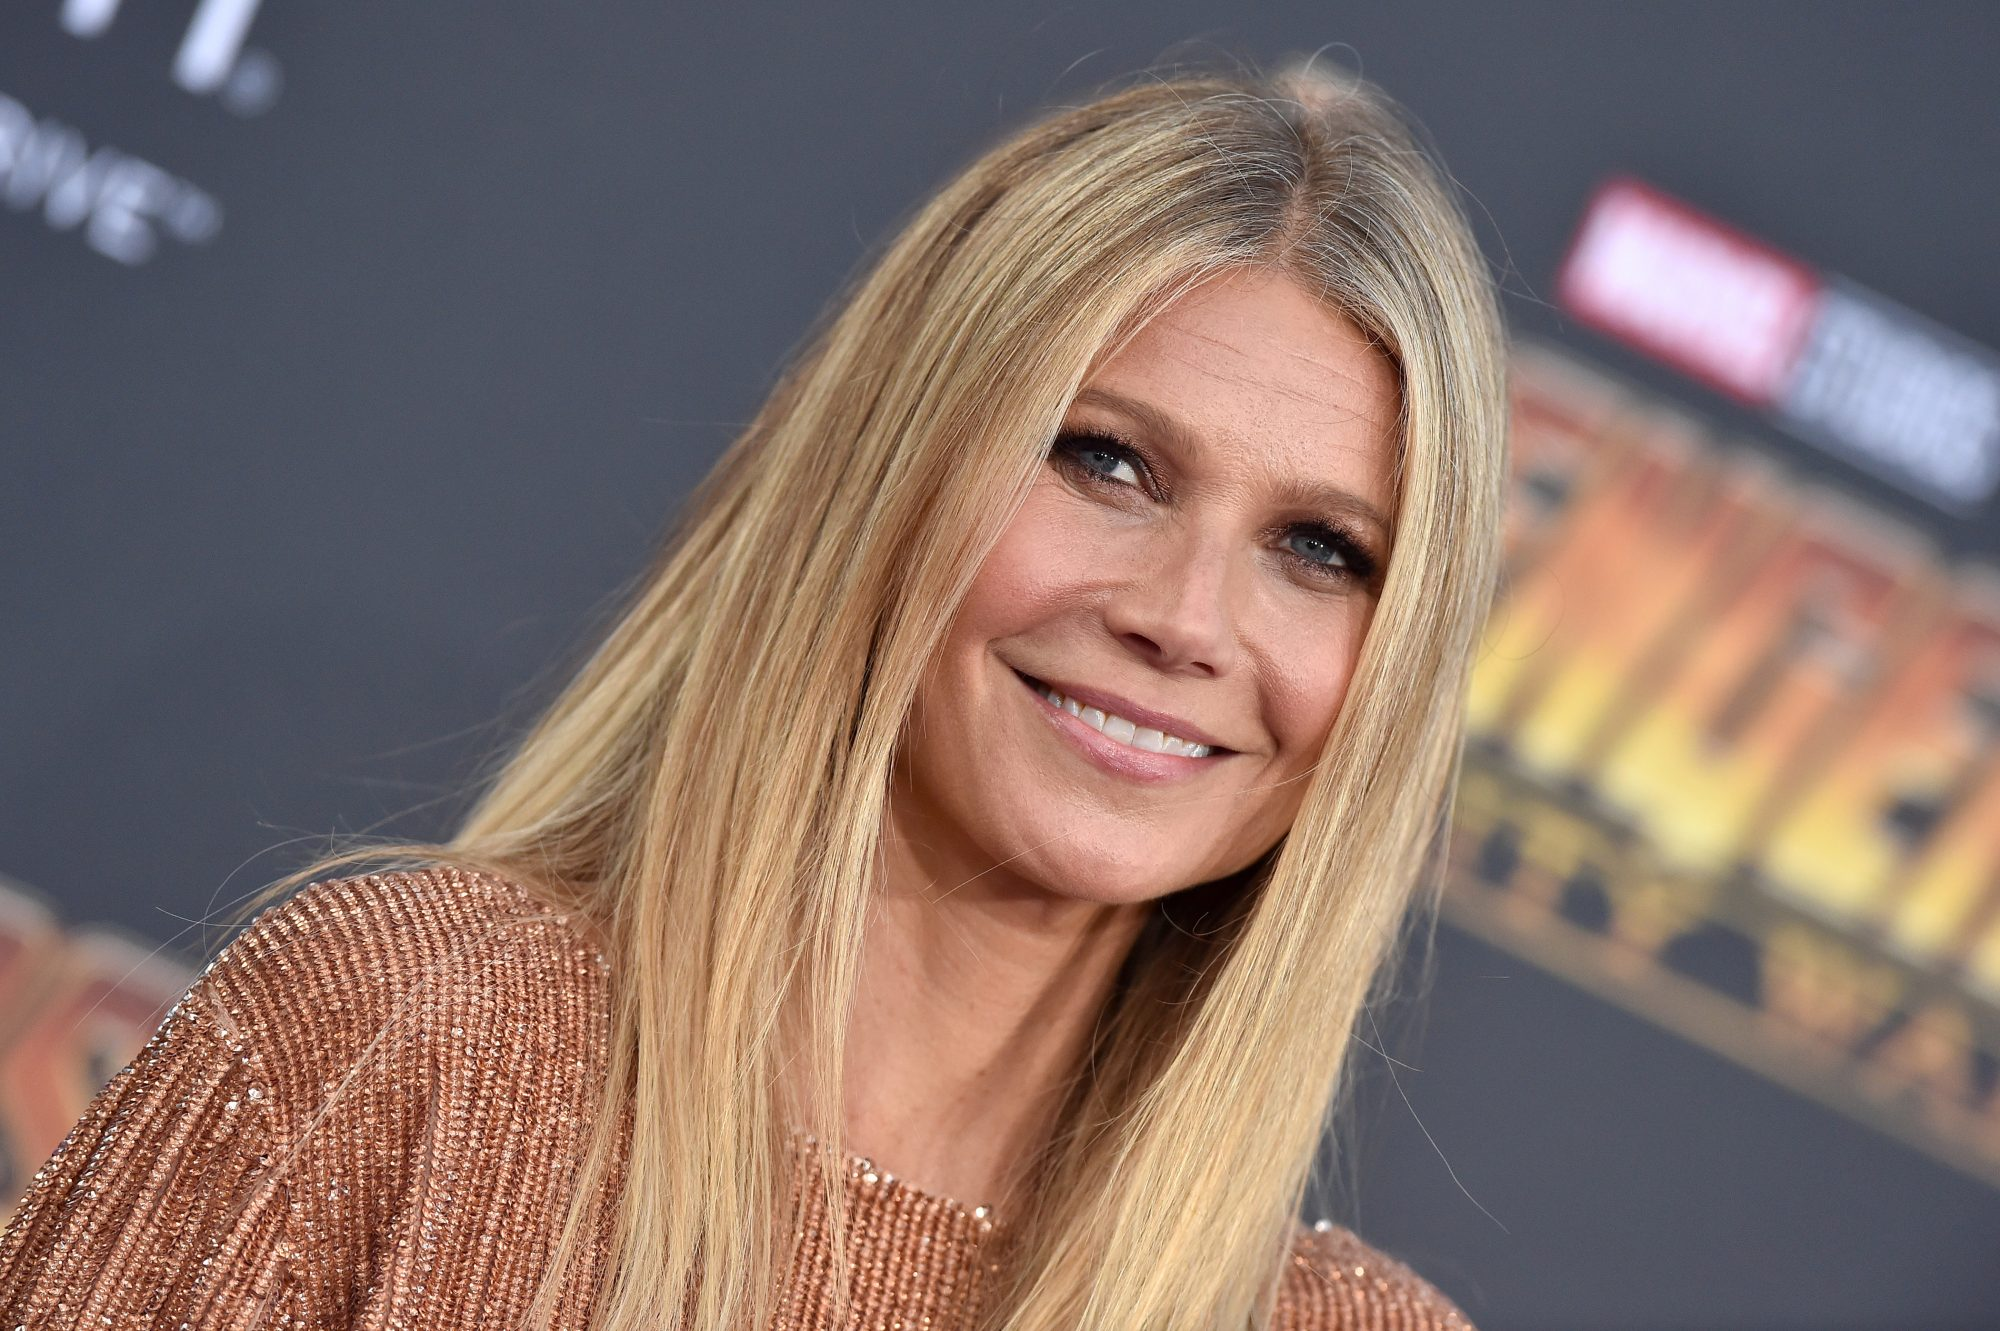 What Is Gwyneth Paltrow Trying to Tell Us With This Horny Instagram Comment?